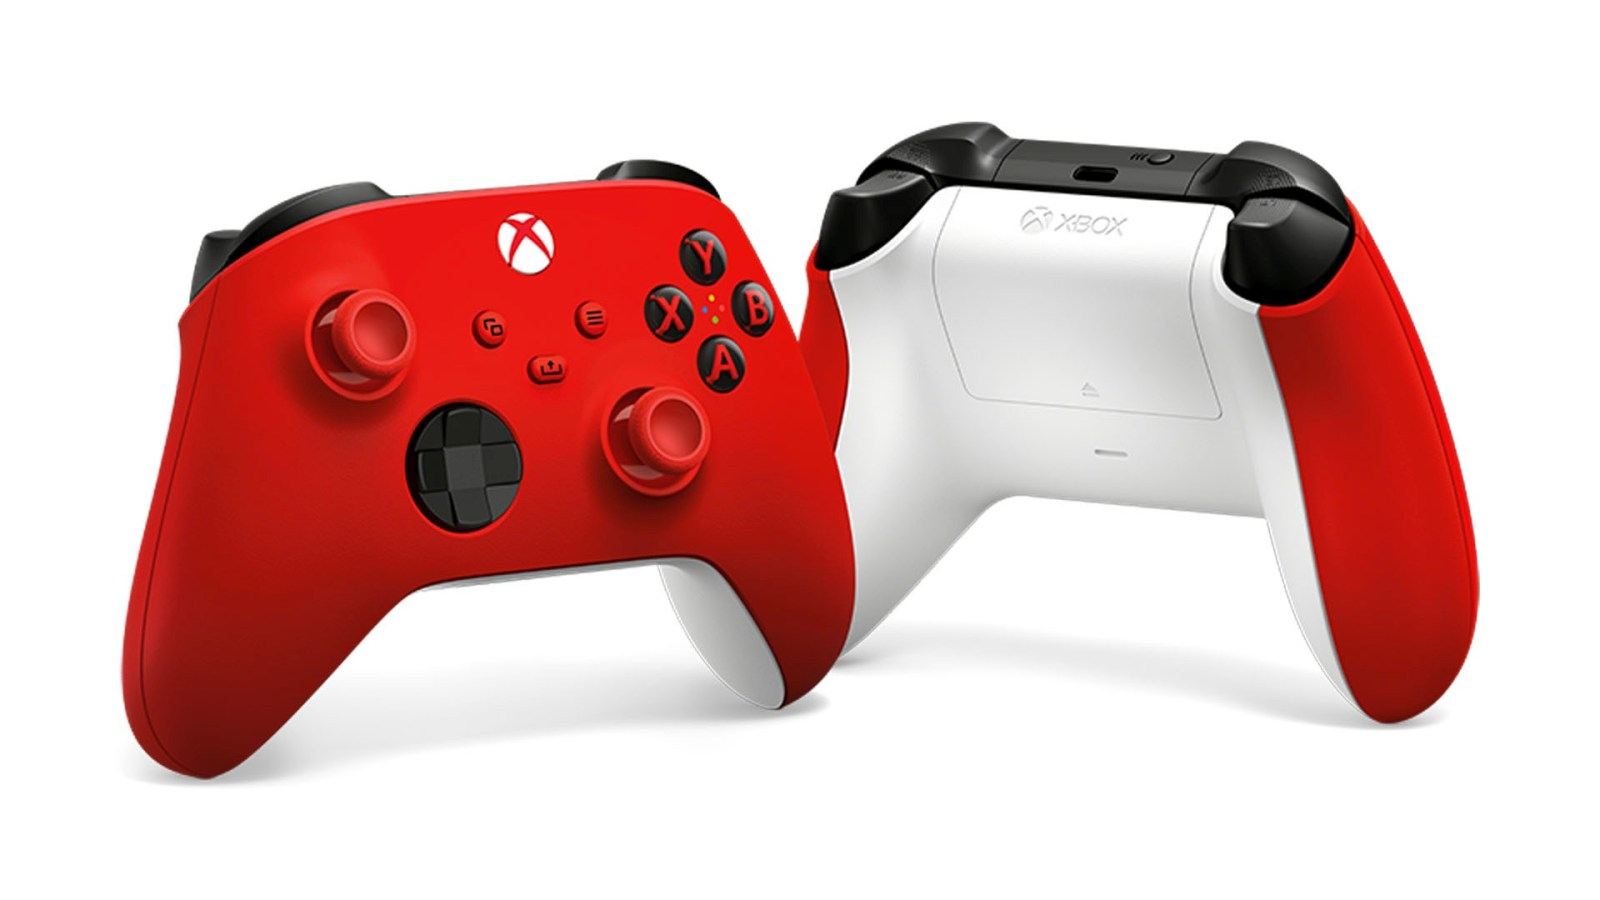 Microsoft Launches new Xbox Wireless Controller in Stunning Pulse Red